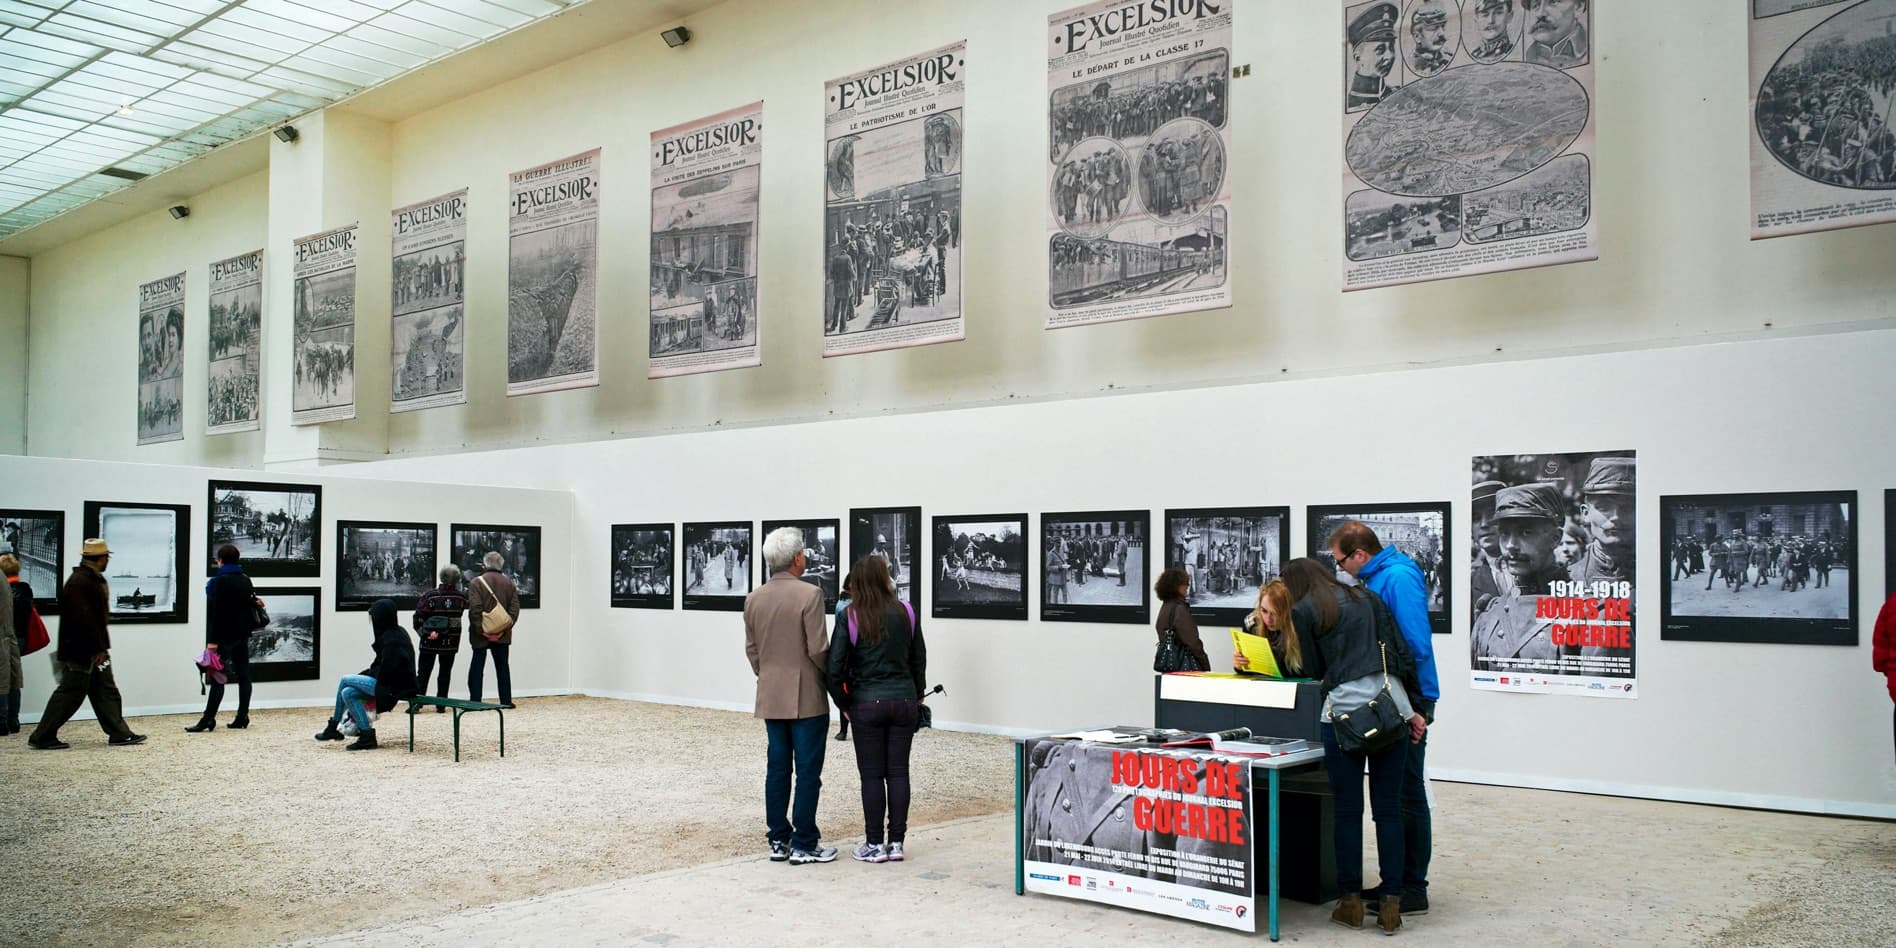 """1914-1918 - Days of war"" at Orangerie Museum, Paris © Denis Fruit / Roger-Viollet"